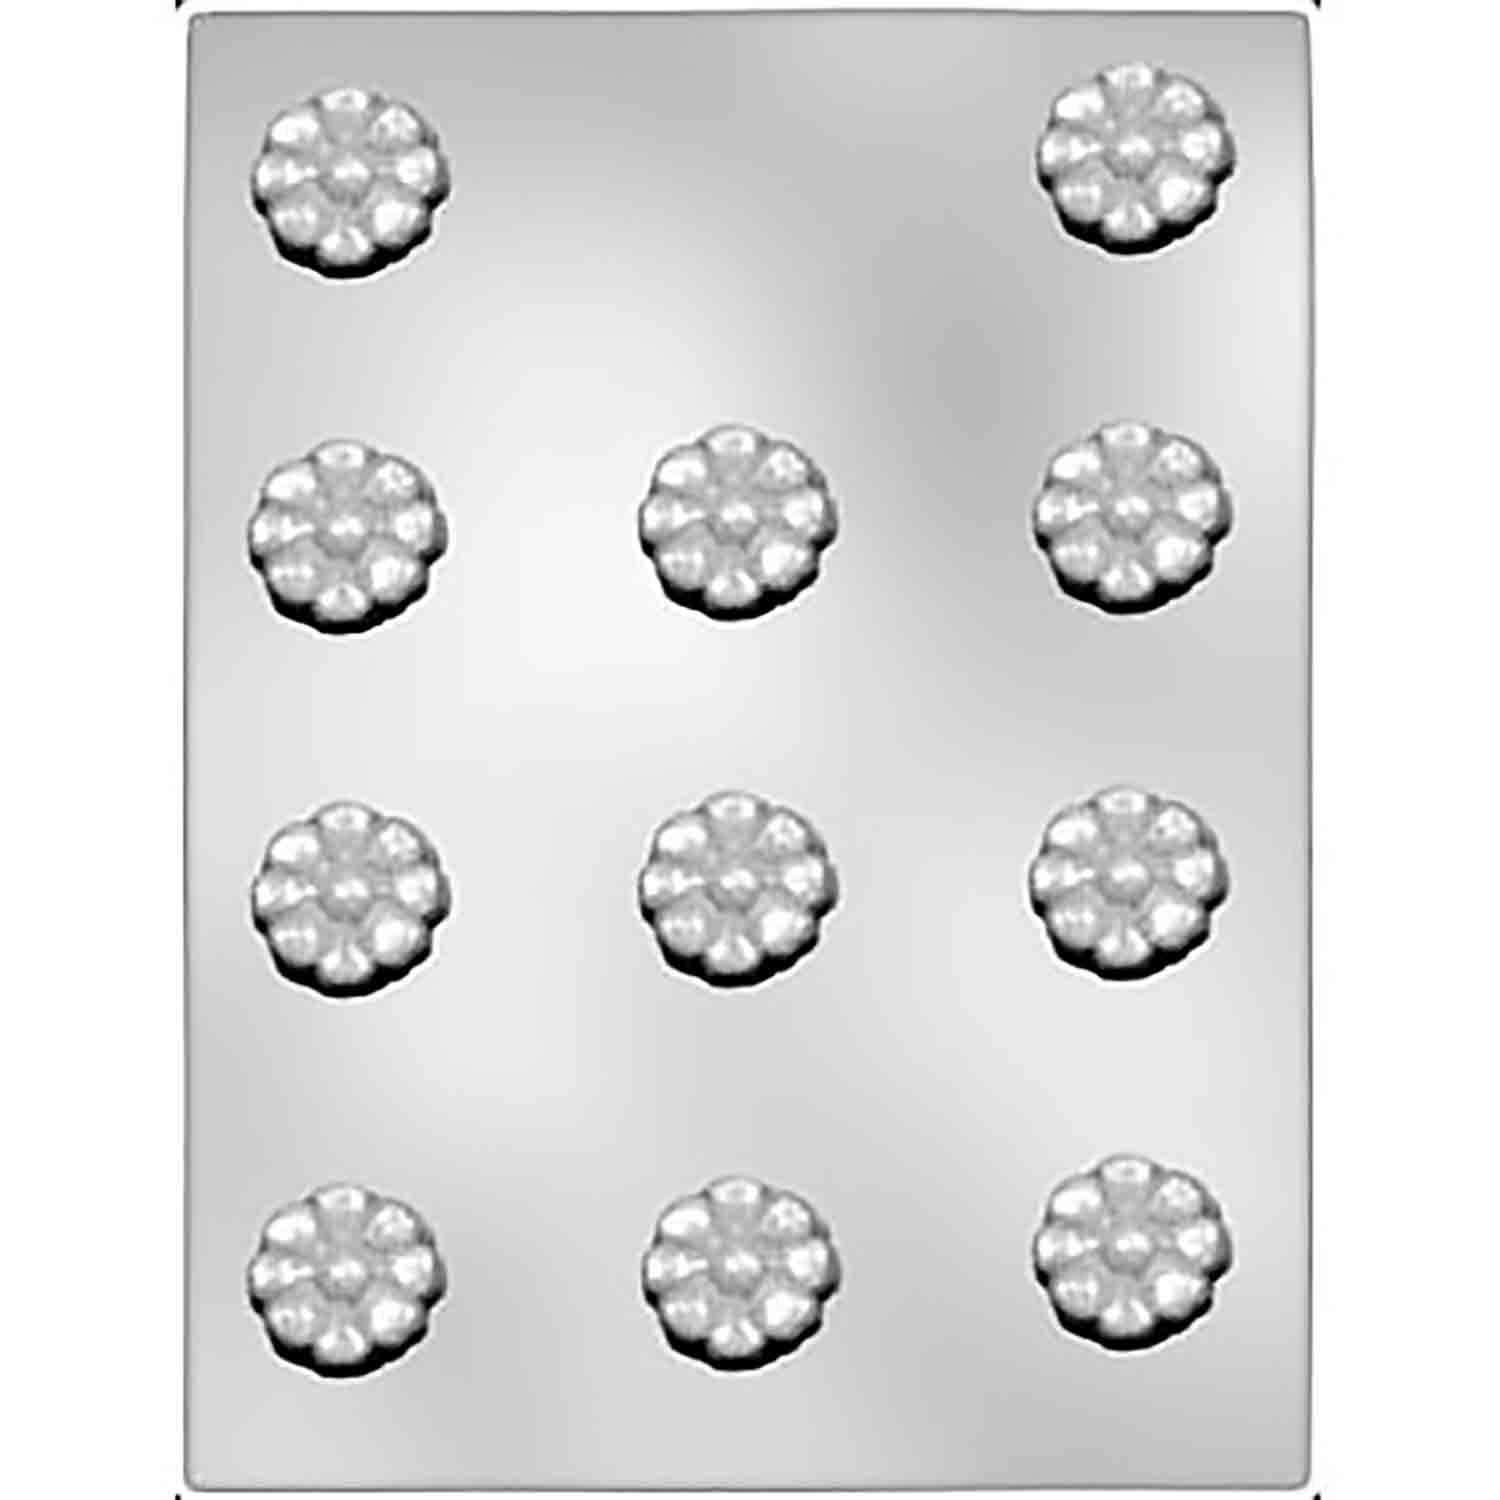 Deep Daisy Chocolate Candy Mold - 1 1/4